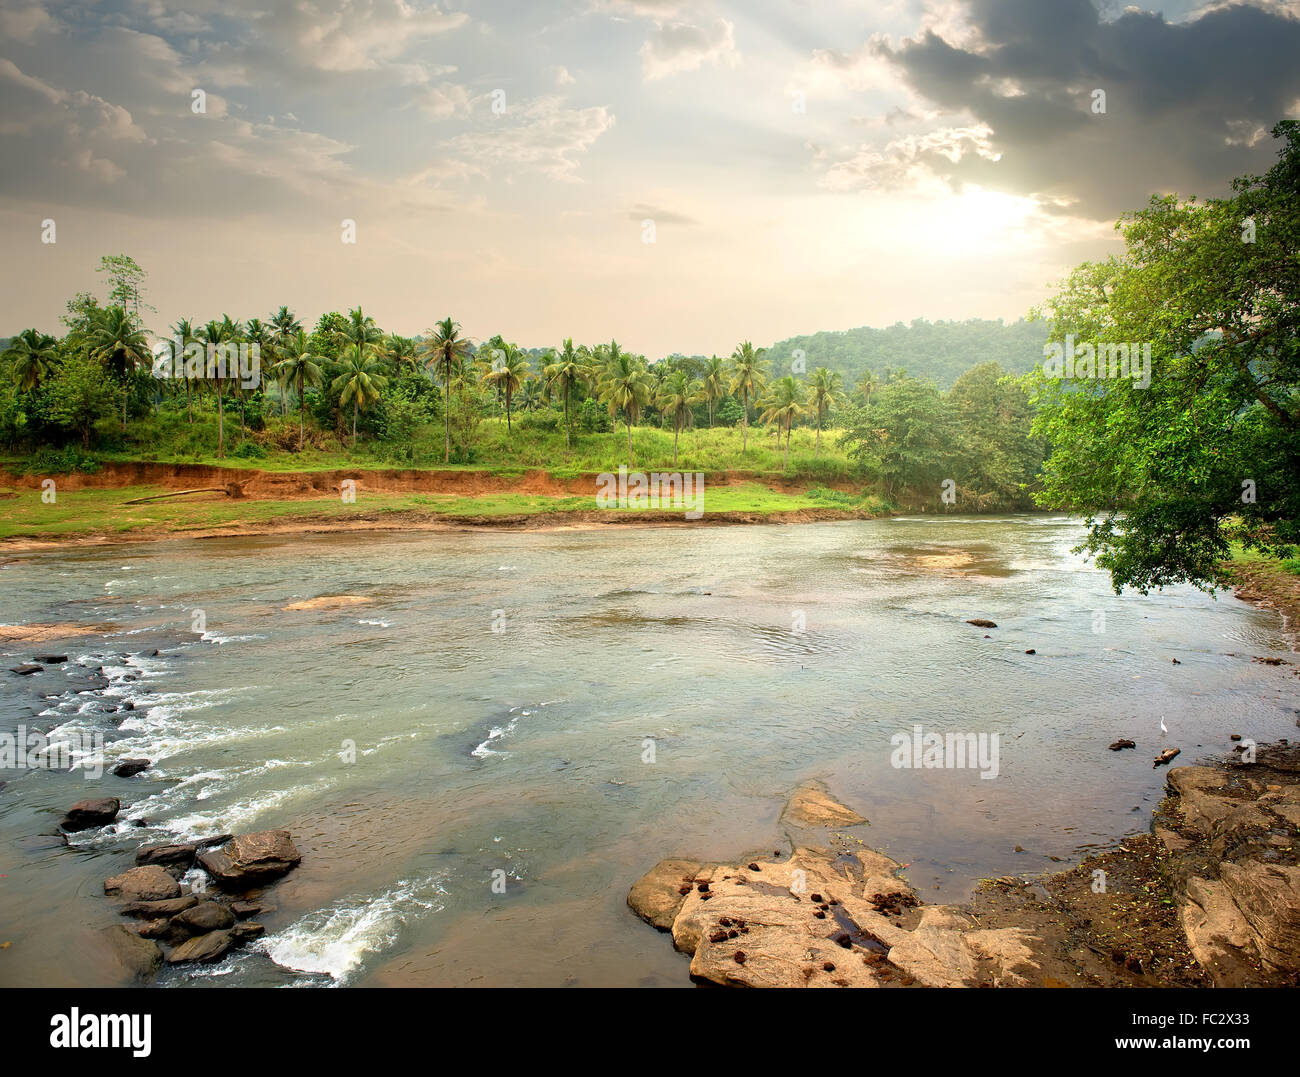 River in jungle of Sri Lanka at sunset - Stock Image